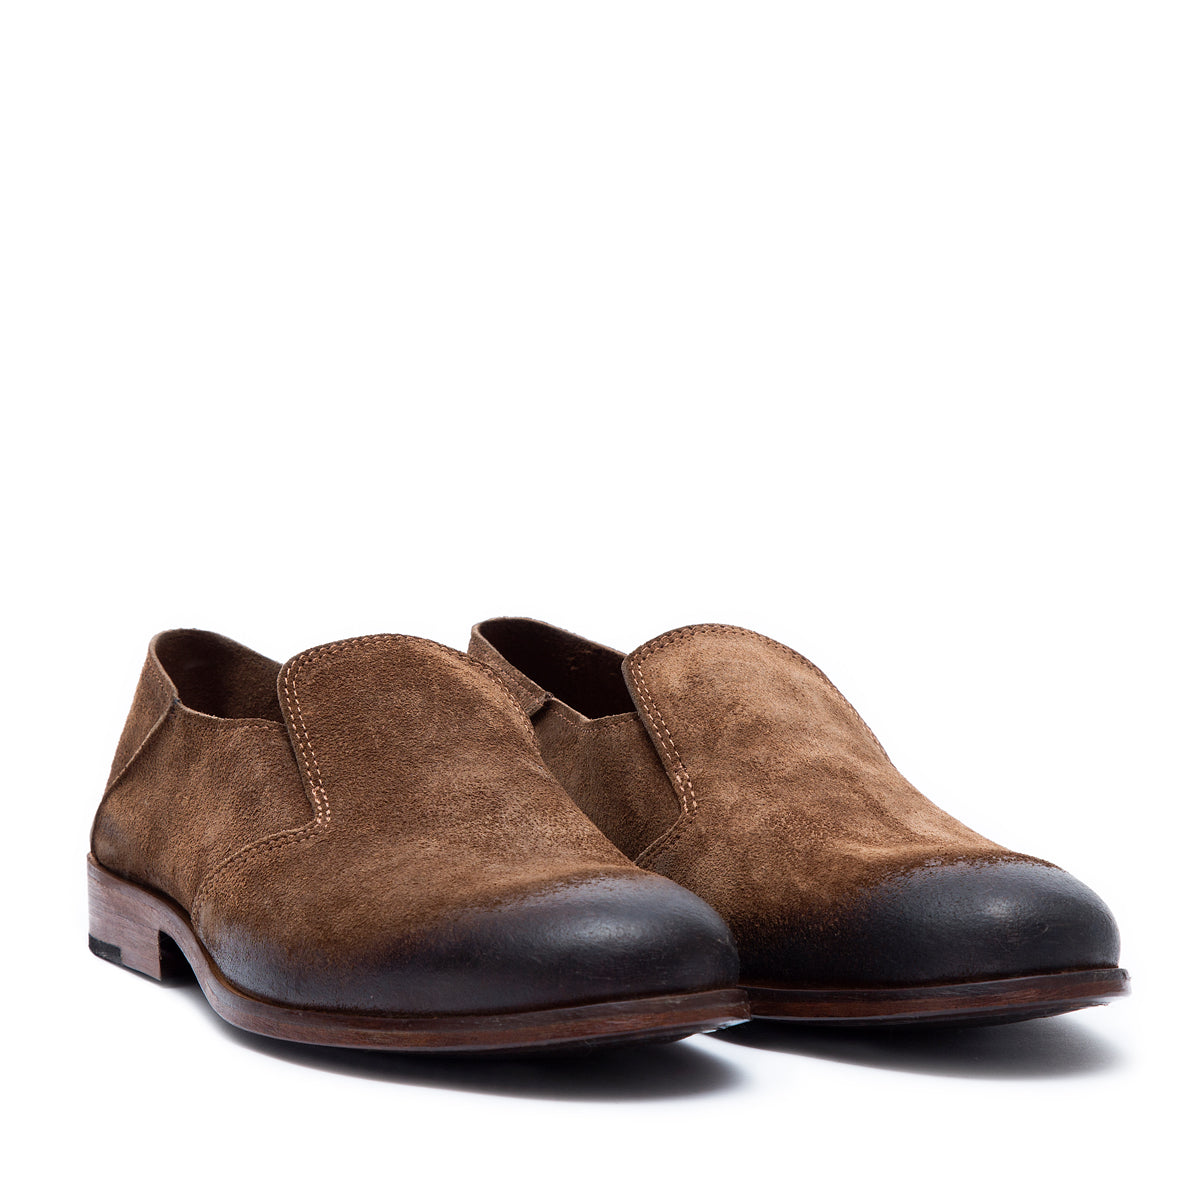 Saxon Habano - suede leather shoes